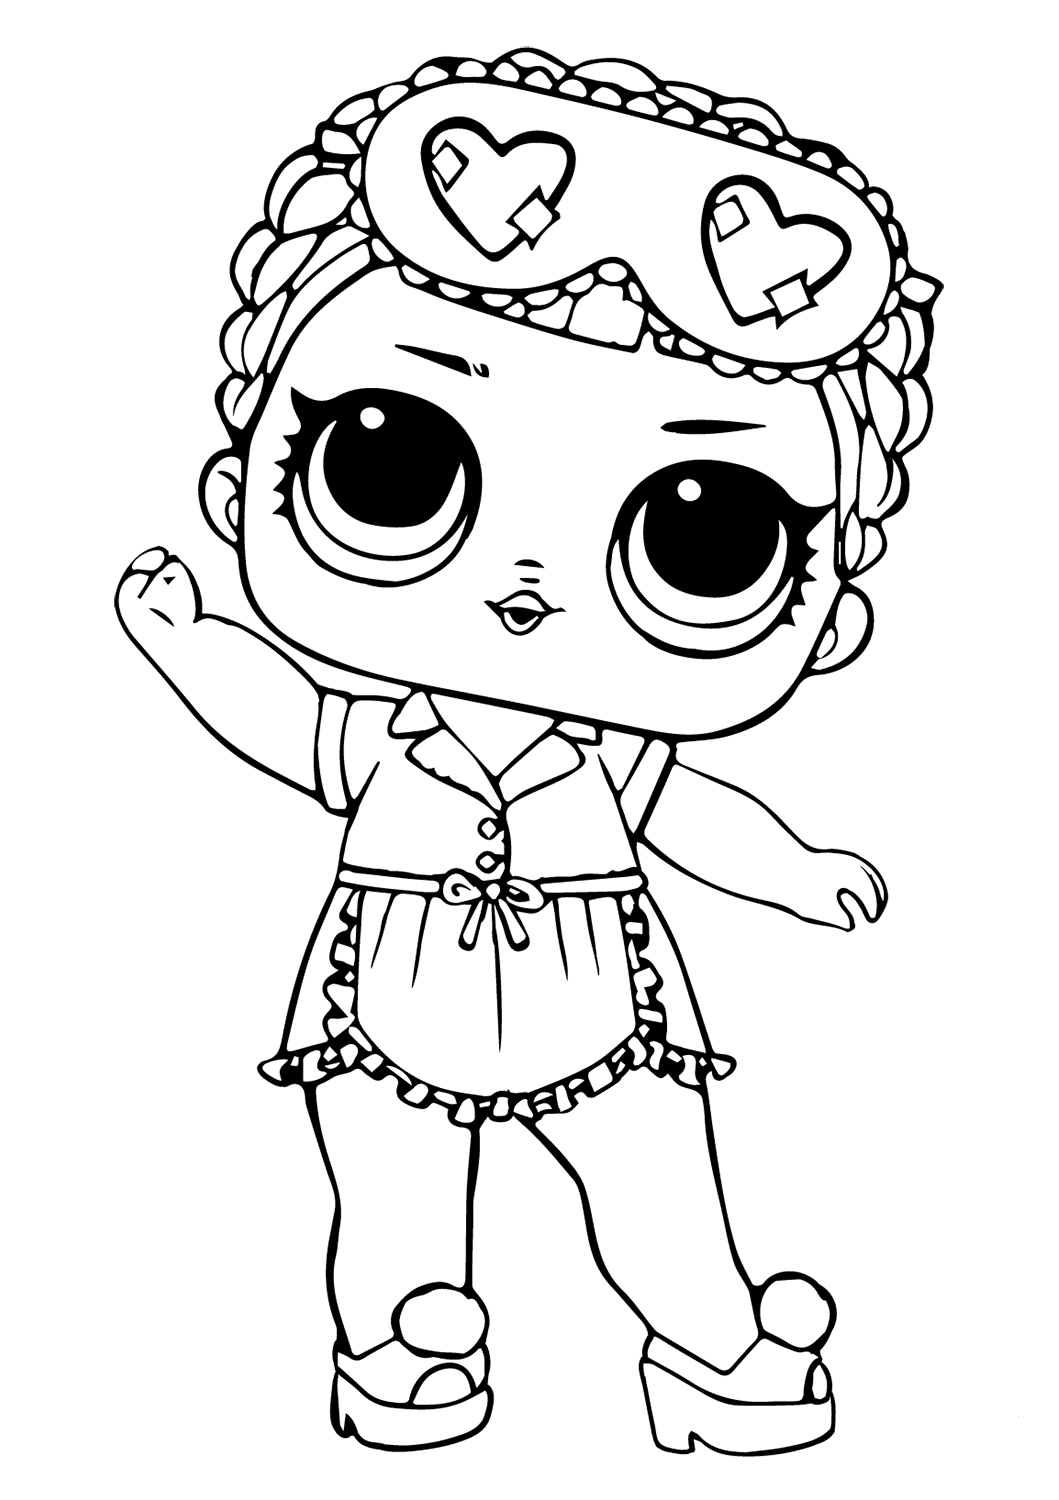 30 Free Printable Lol Surprise Doll Coloring Pages ...